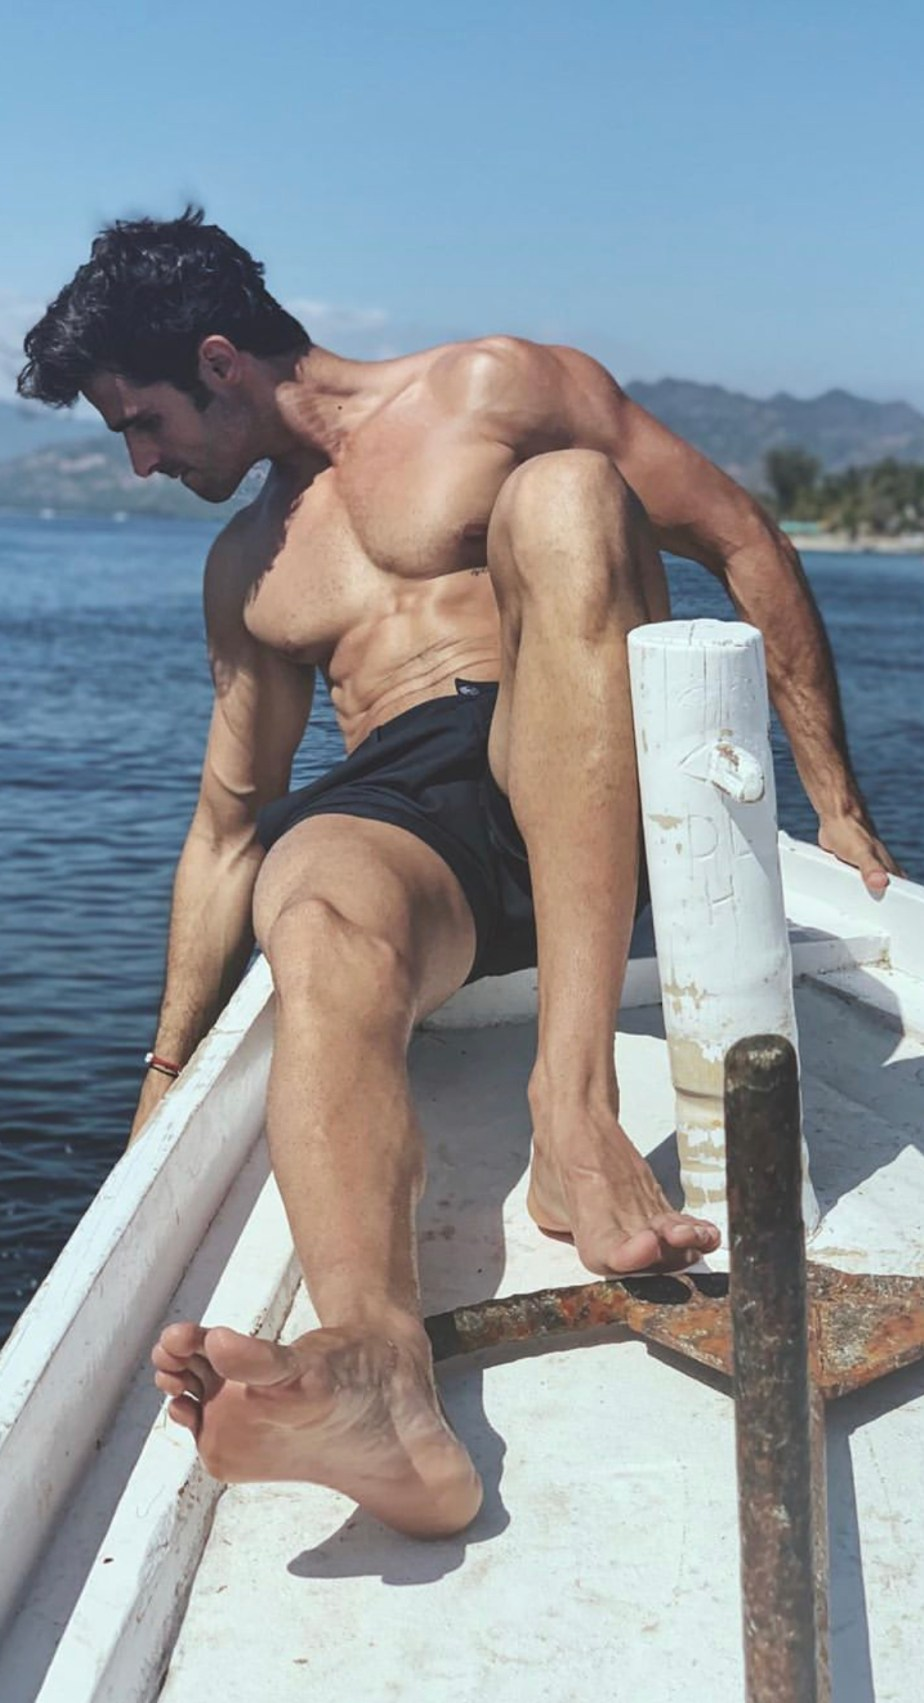 juanbetancourtt shirtless with his bare size 11 soles on show on a boat